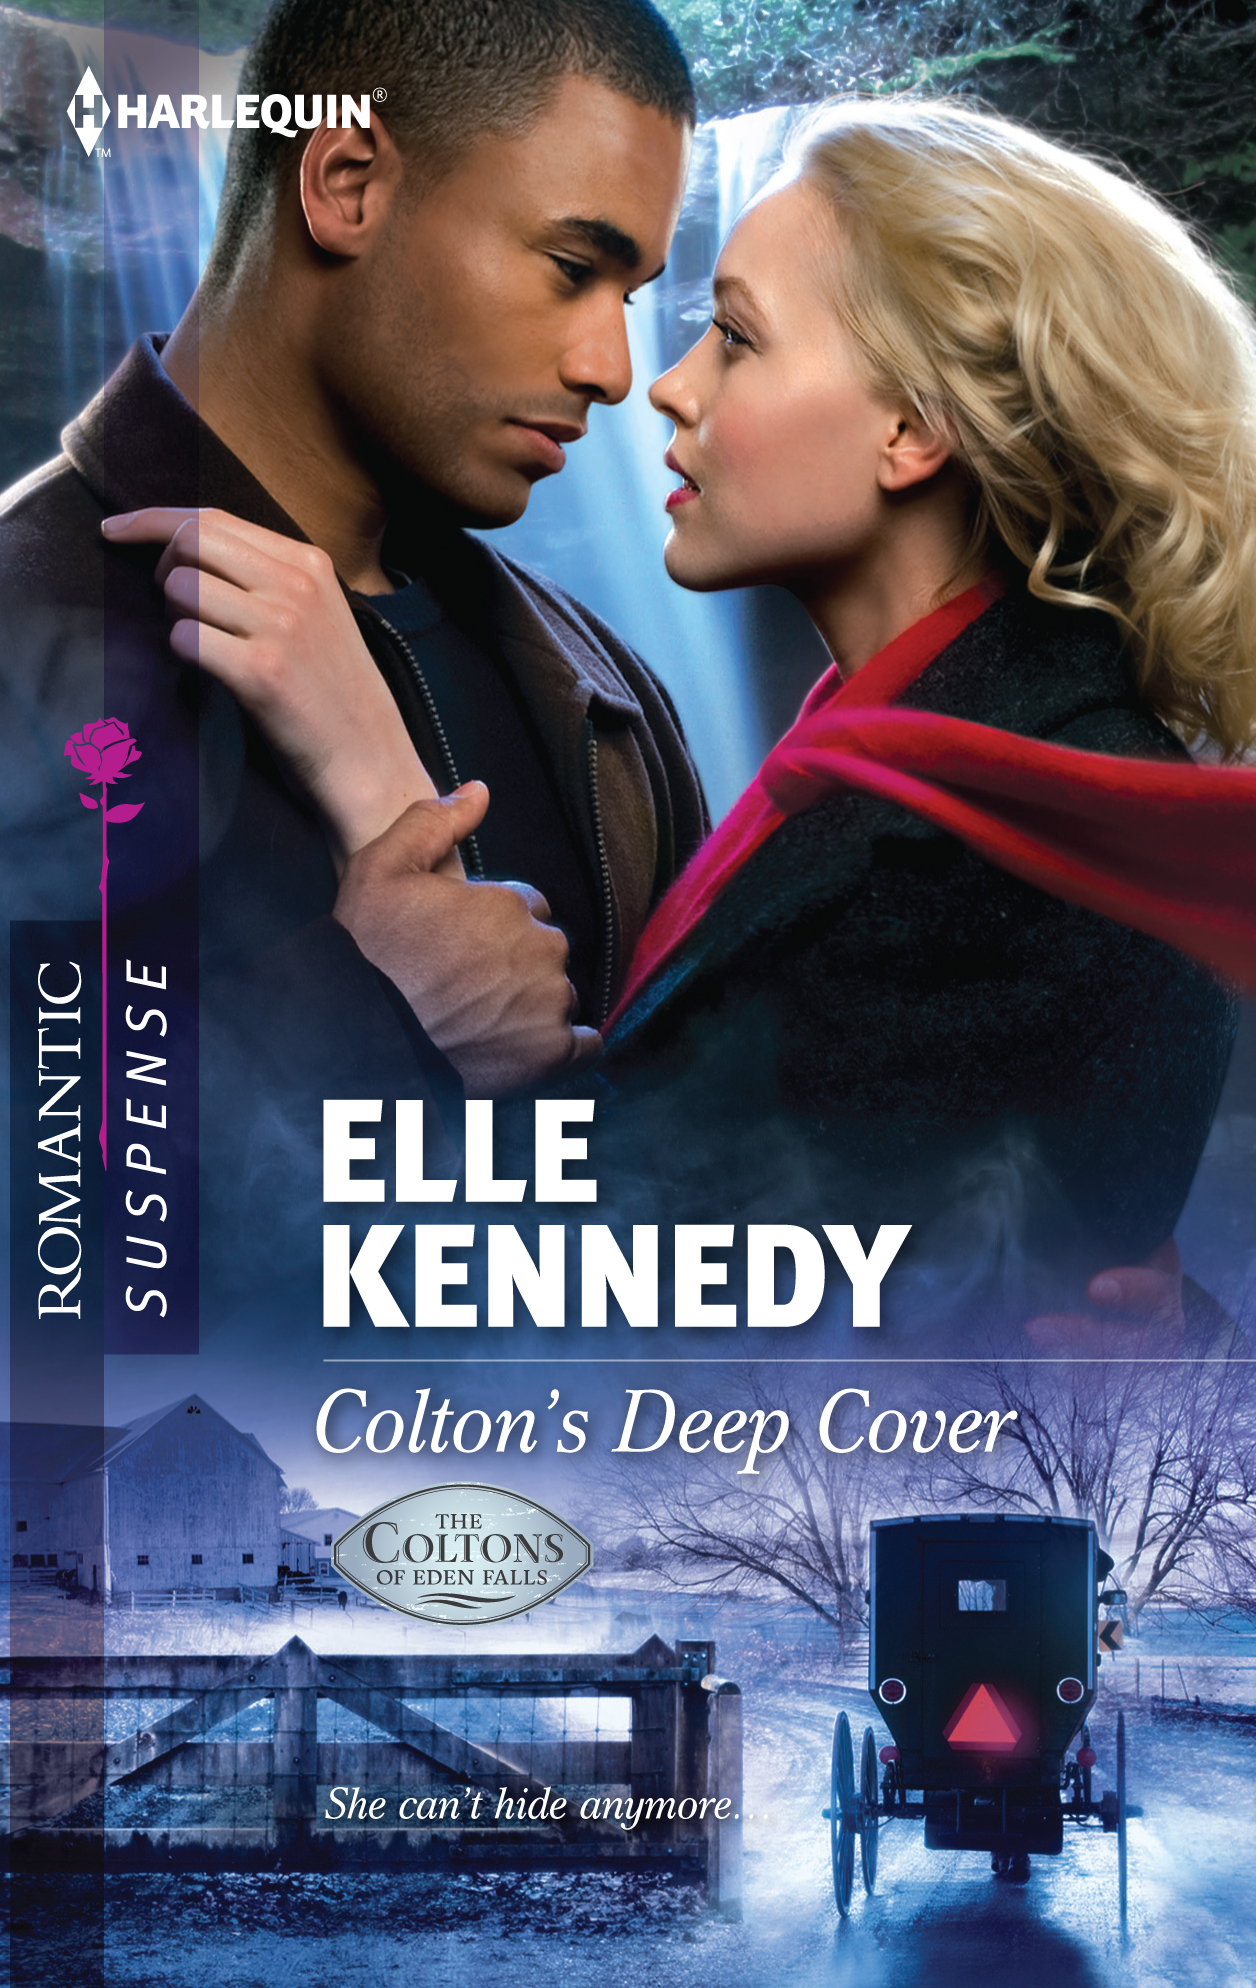 The cover artwork for Elle Kennedy's Colton's Deep Cover